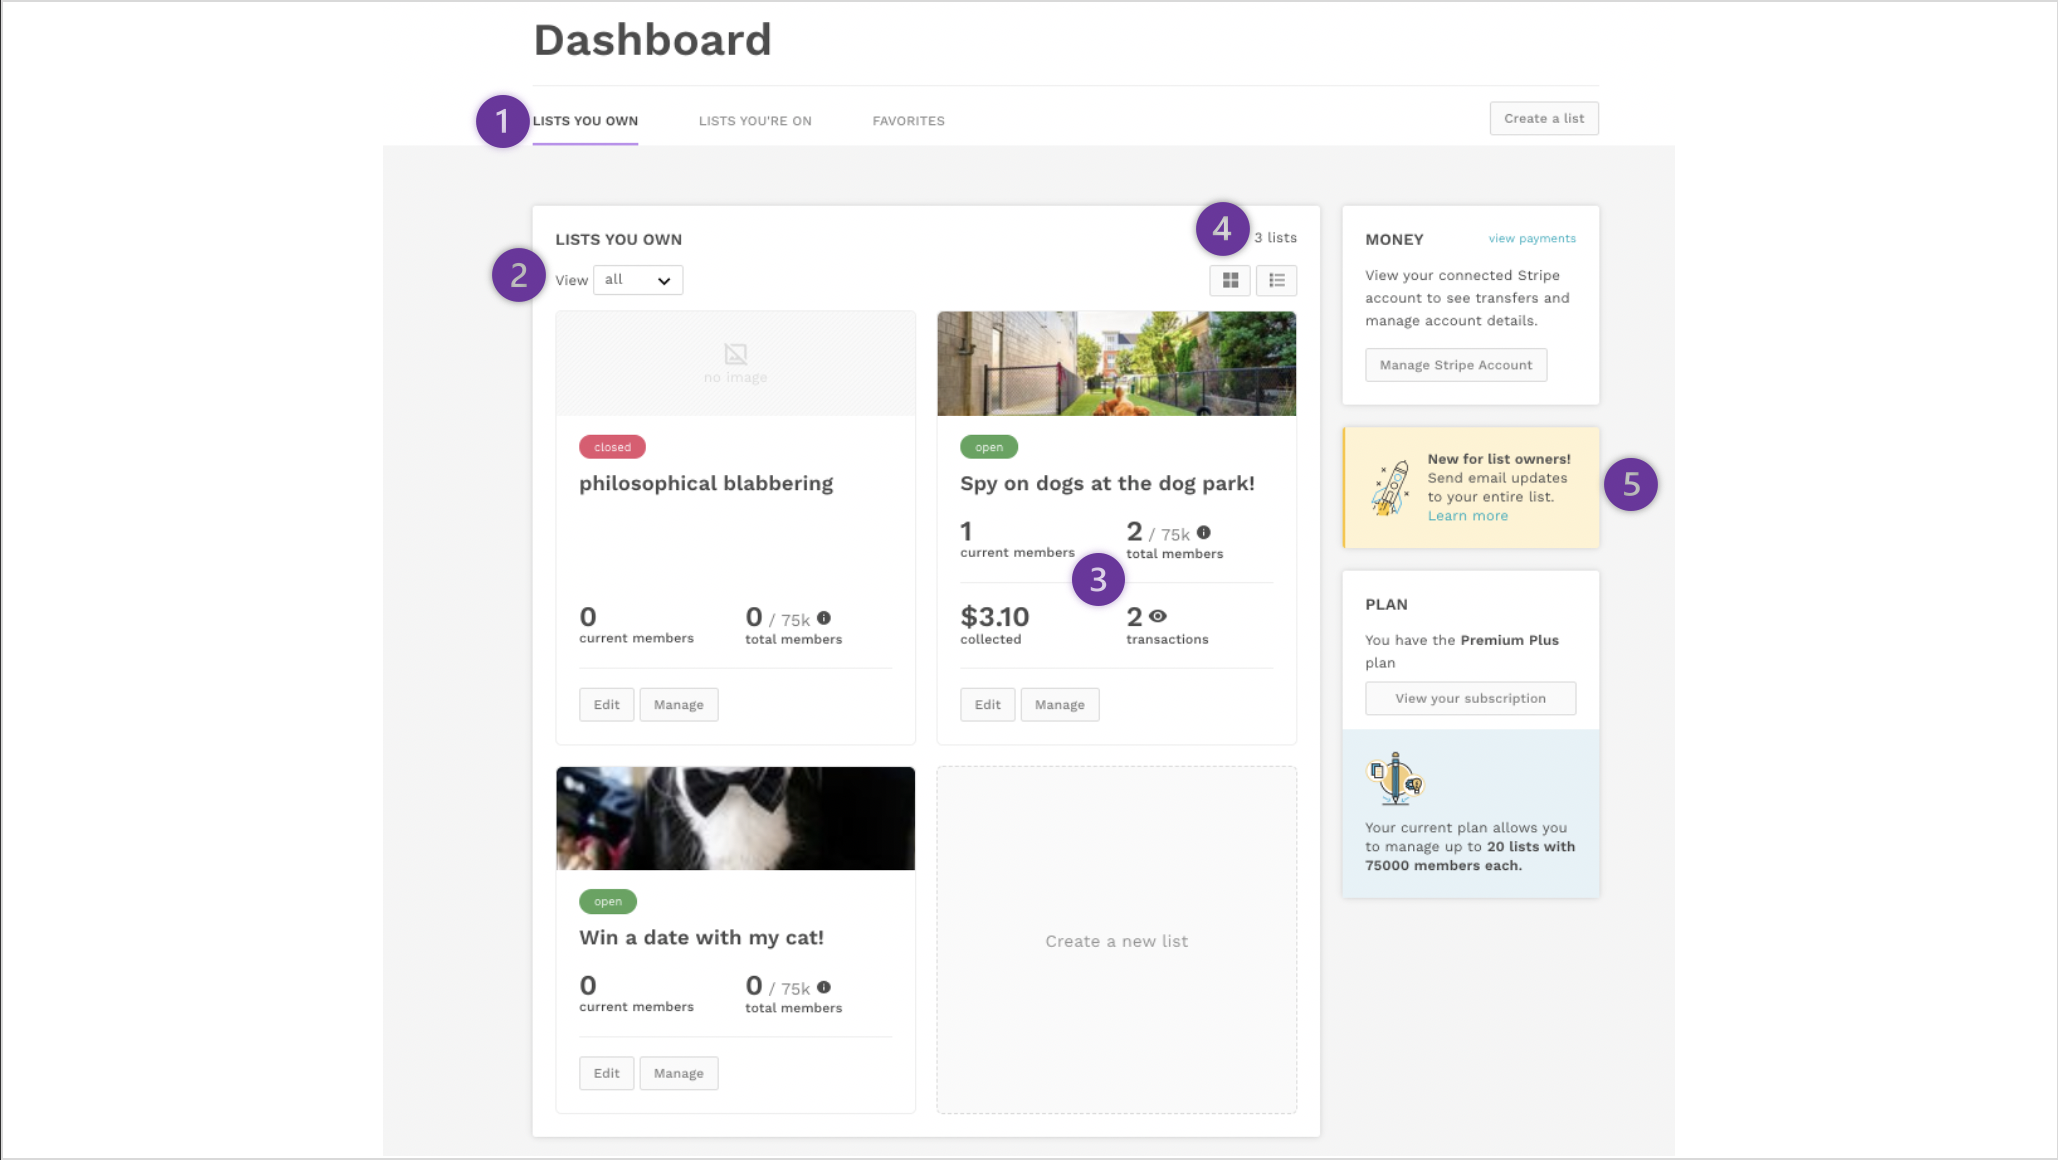 Image of the new dashboard with callout bubbles.